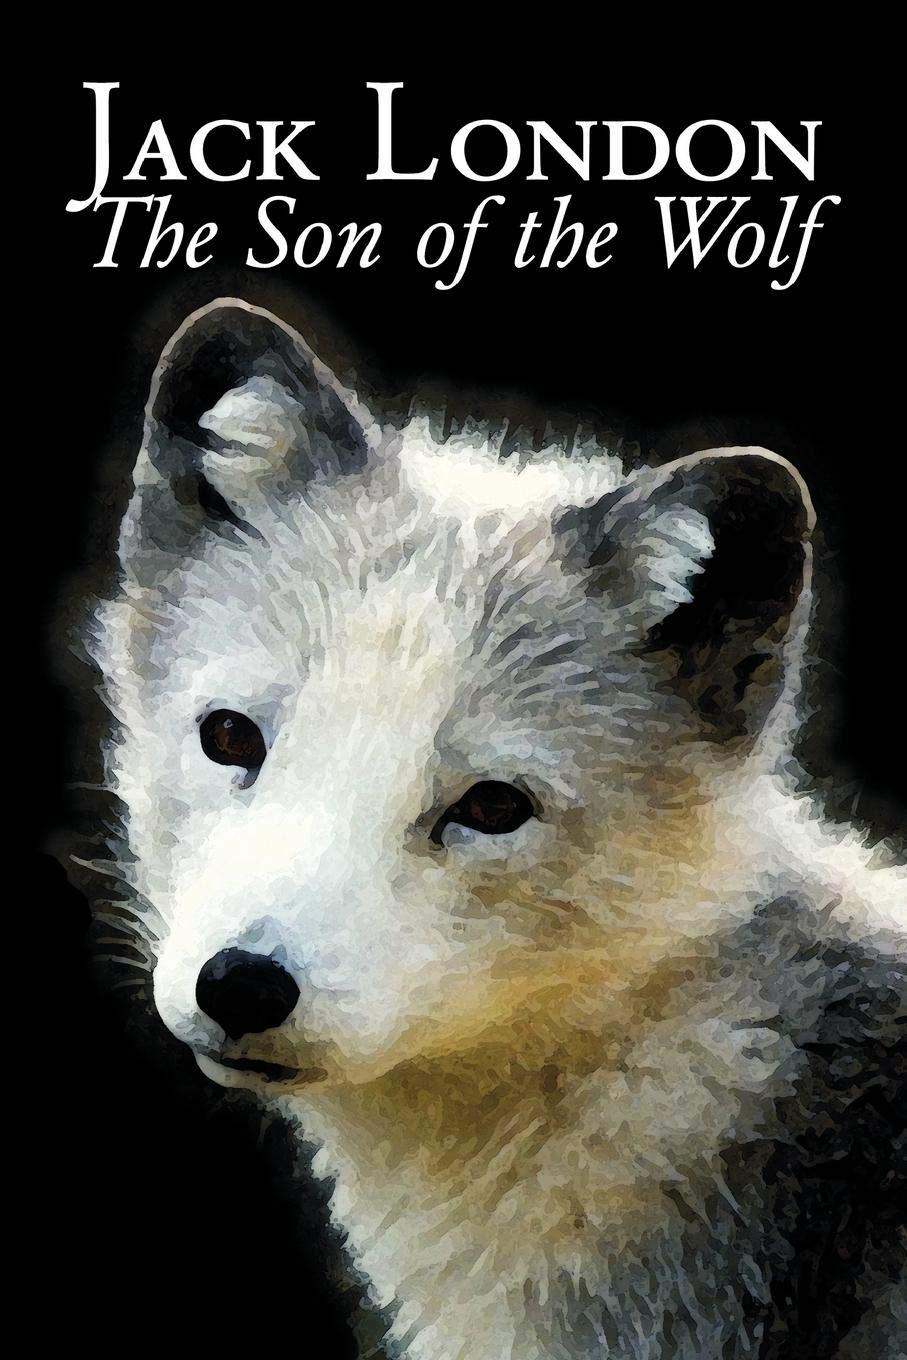 Download The Son of the Wolf by Jack London, Fiction, Action & Adventure pdf epub